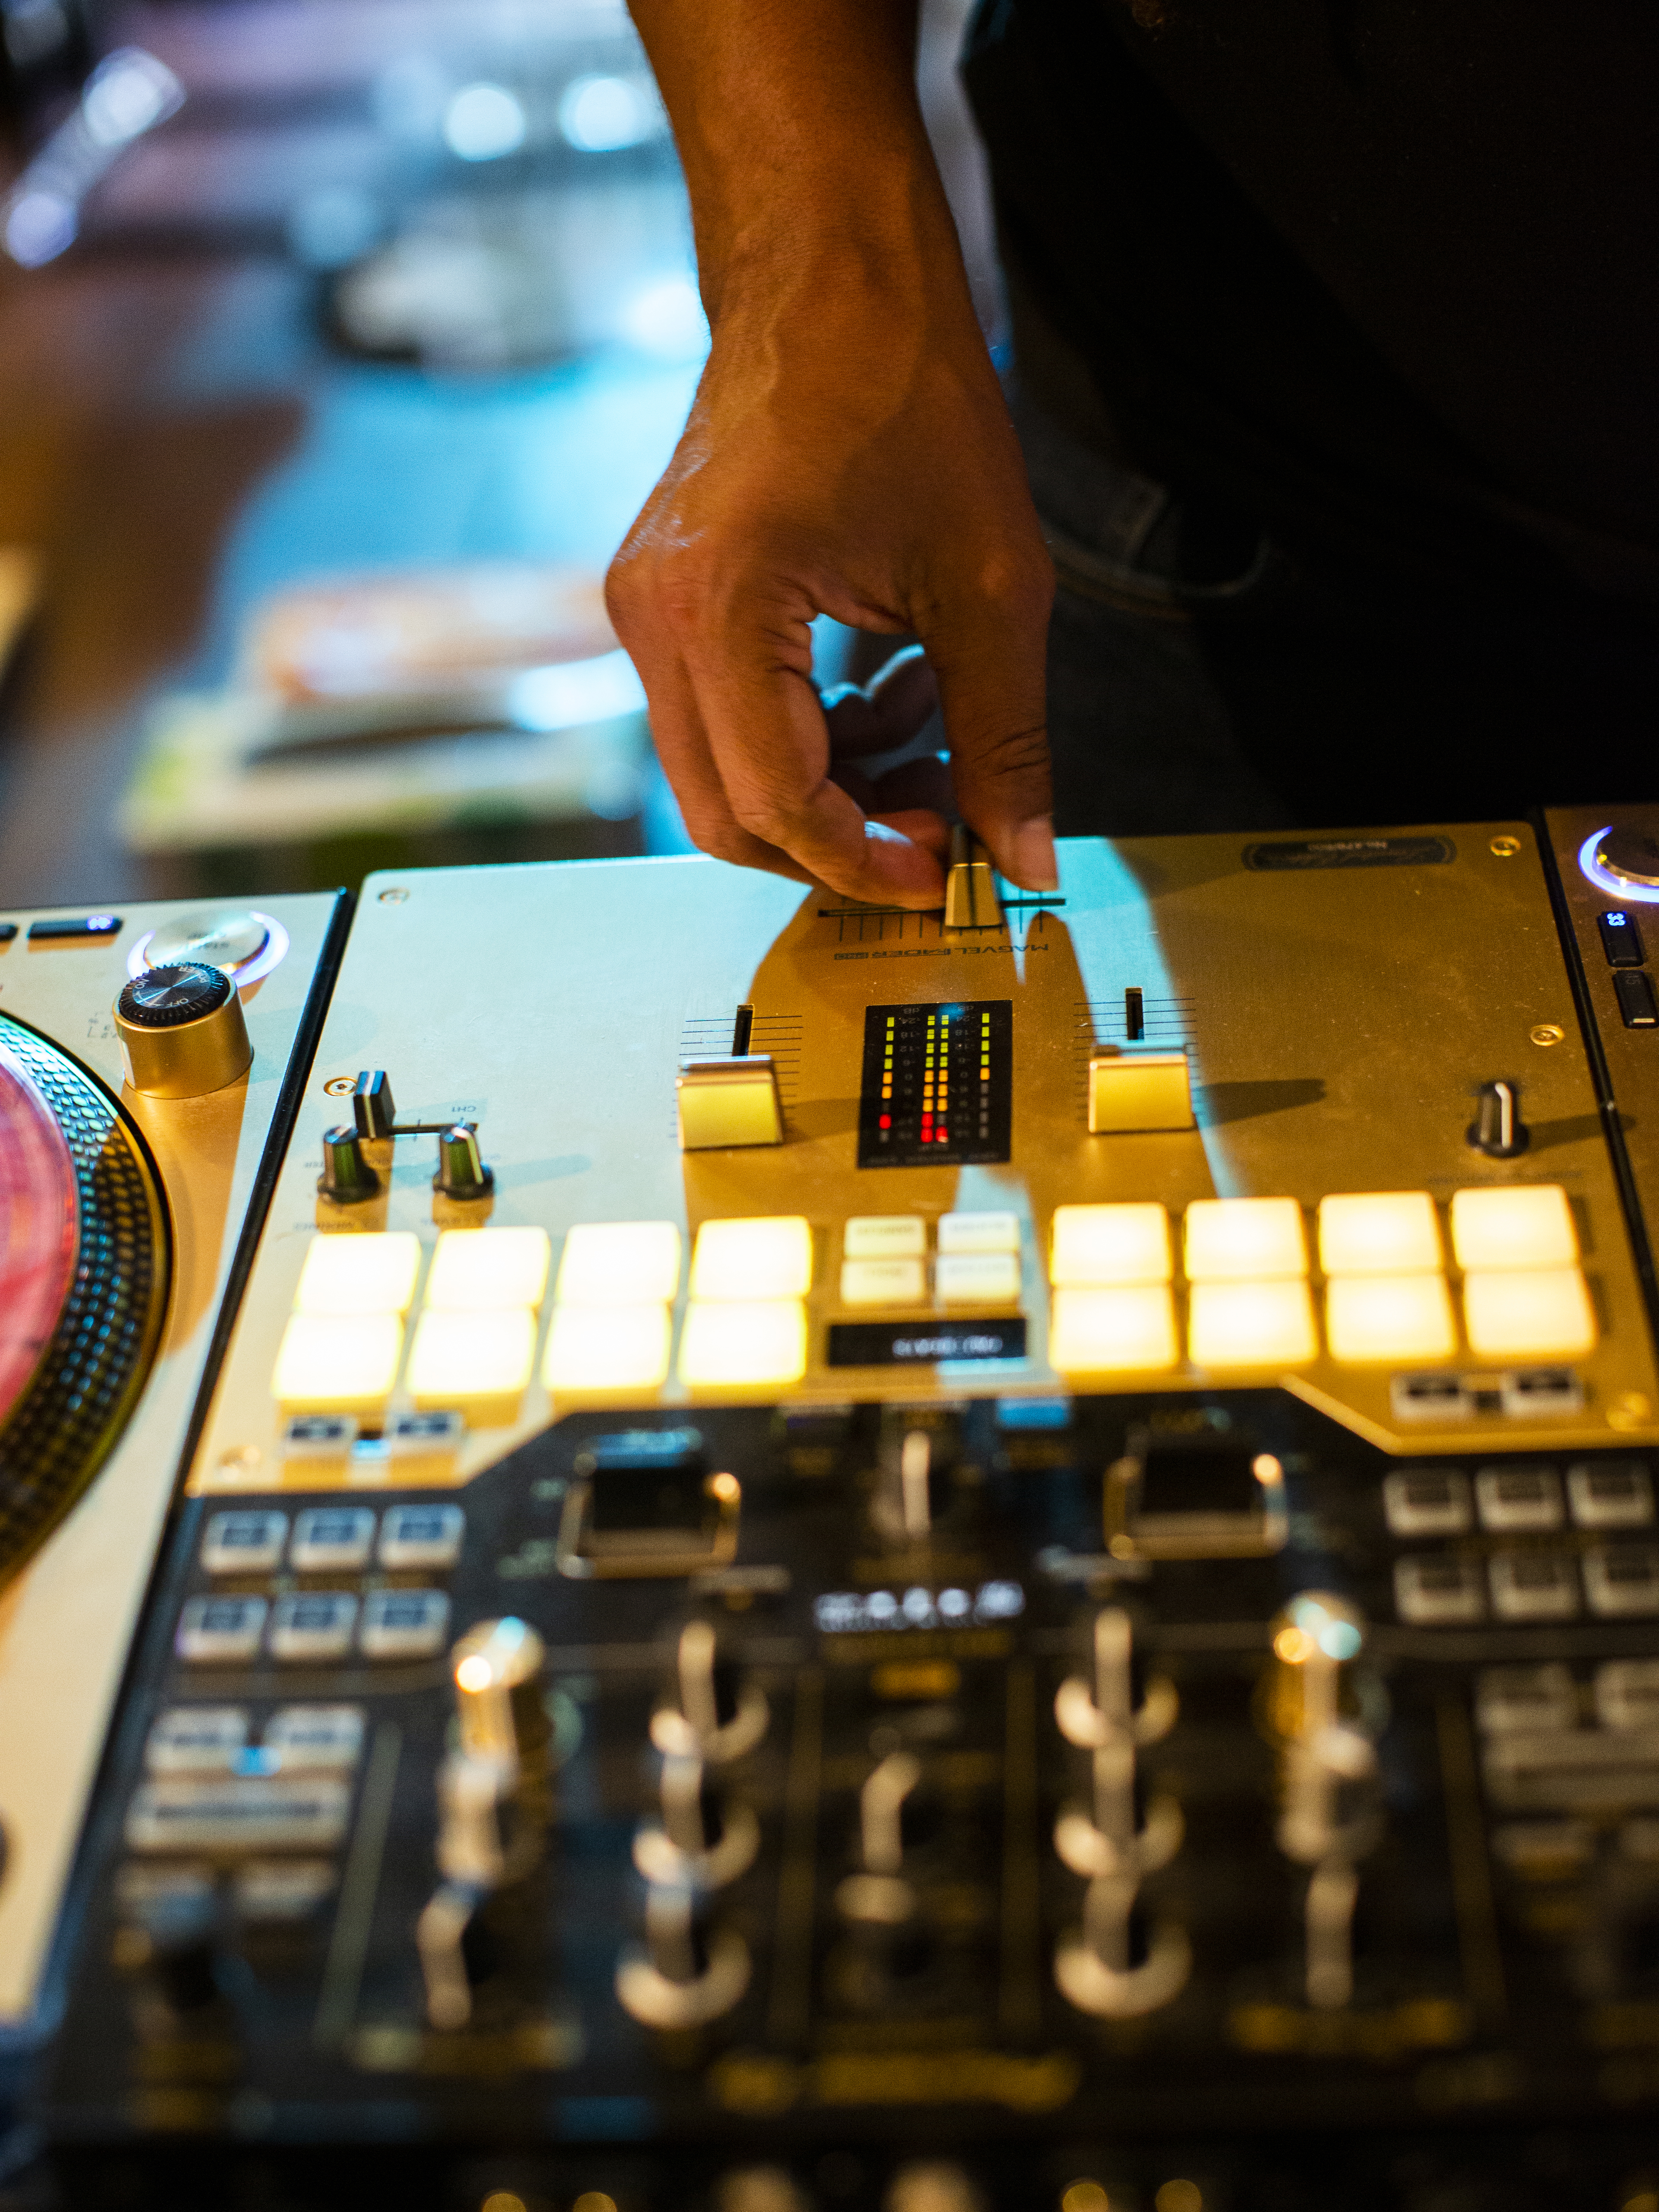 Learn the basics of the mixer and fader